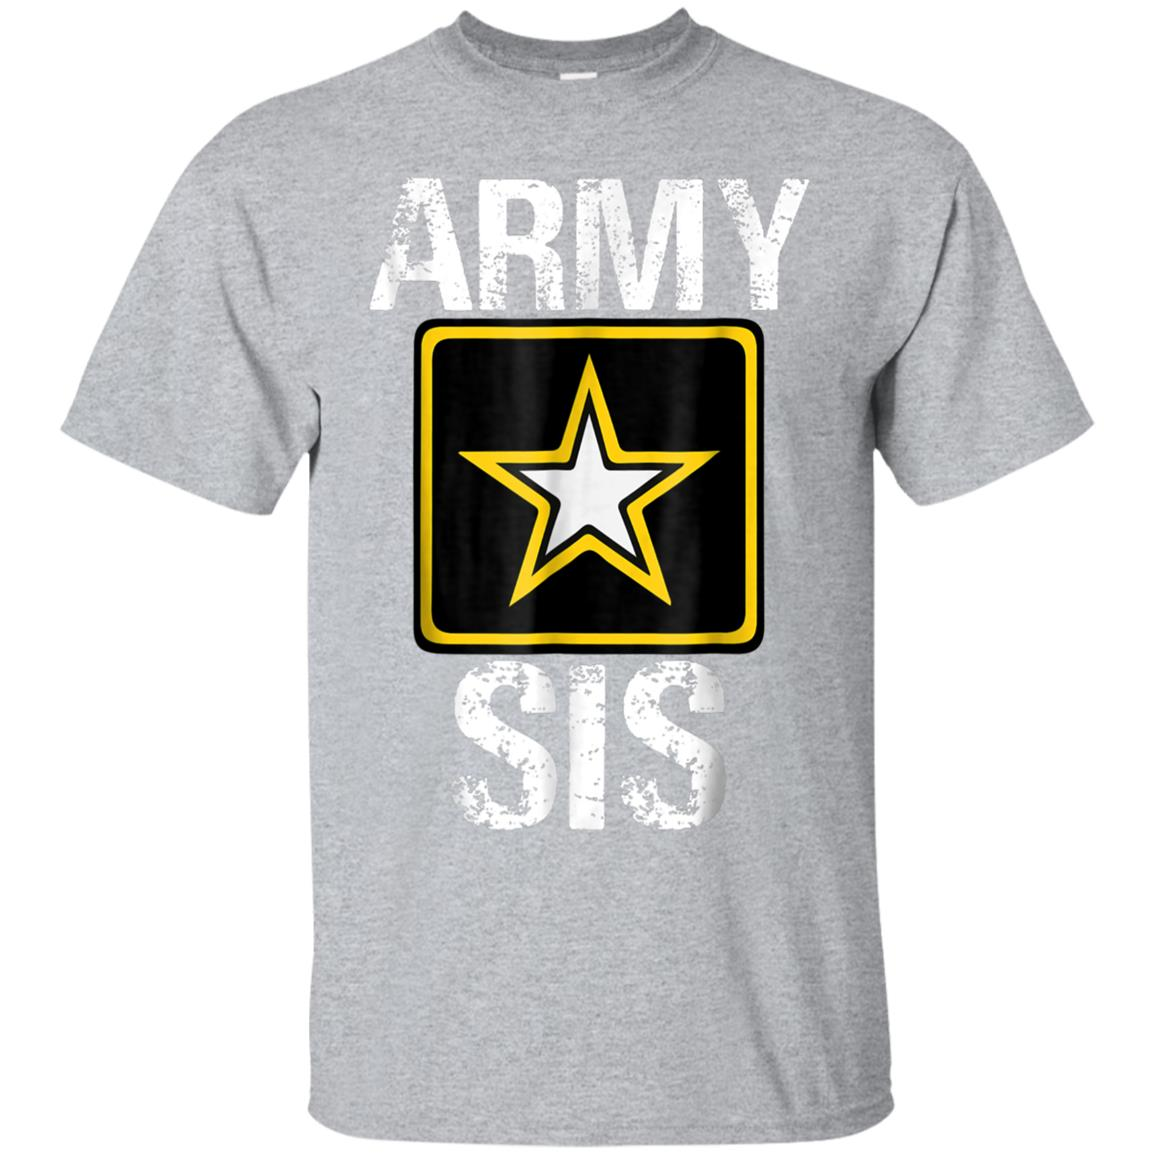 Proud US Army Sister Shirt, Proud Army Sister T shirt 99promocode